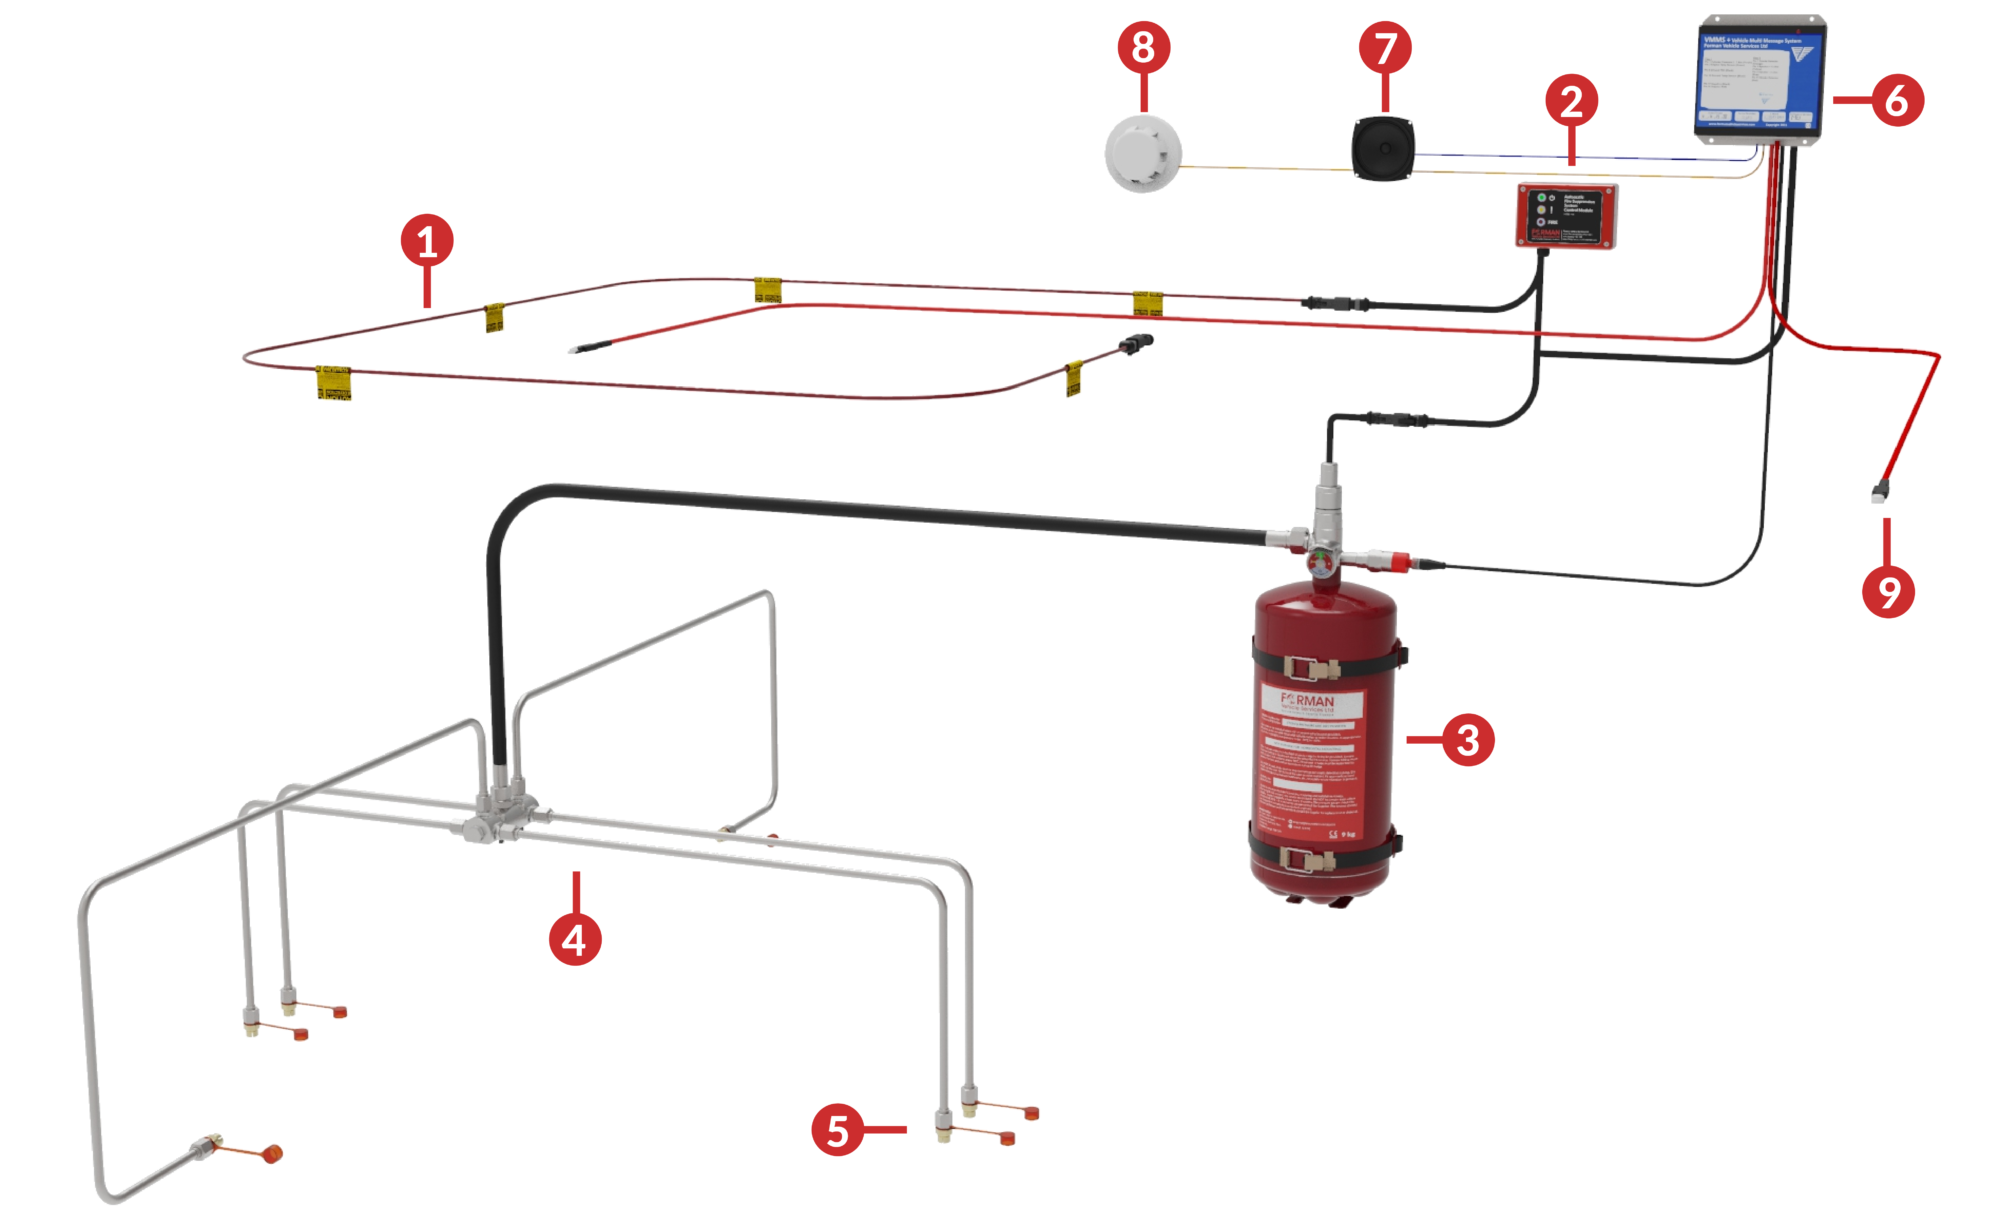 Fully R107 approved fire suppression system with labelled components